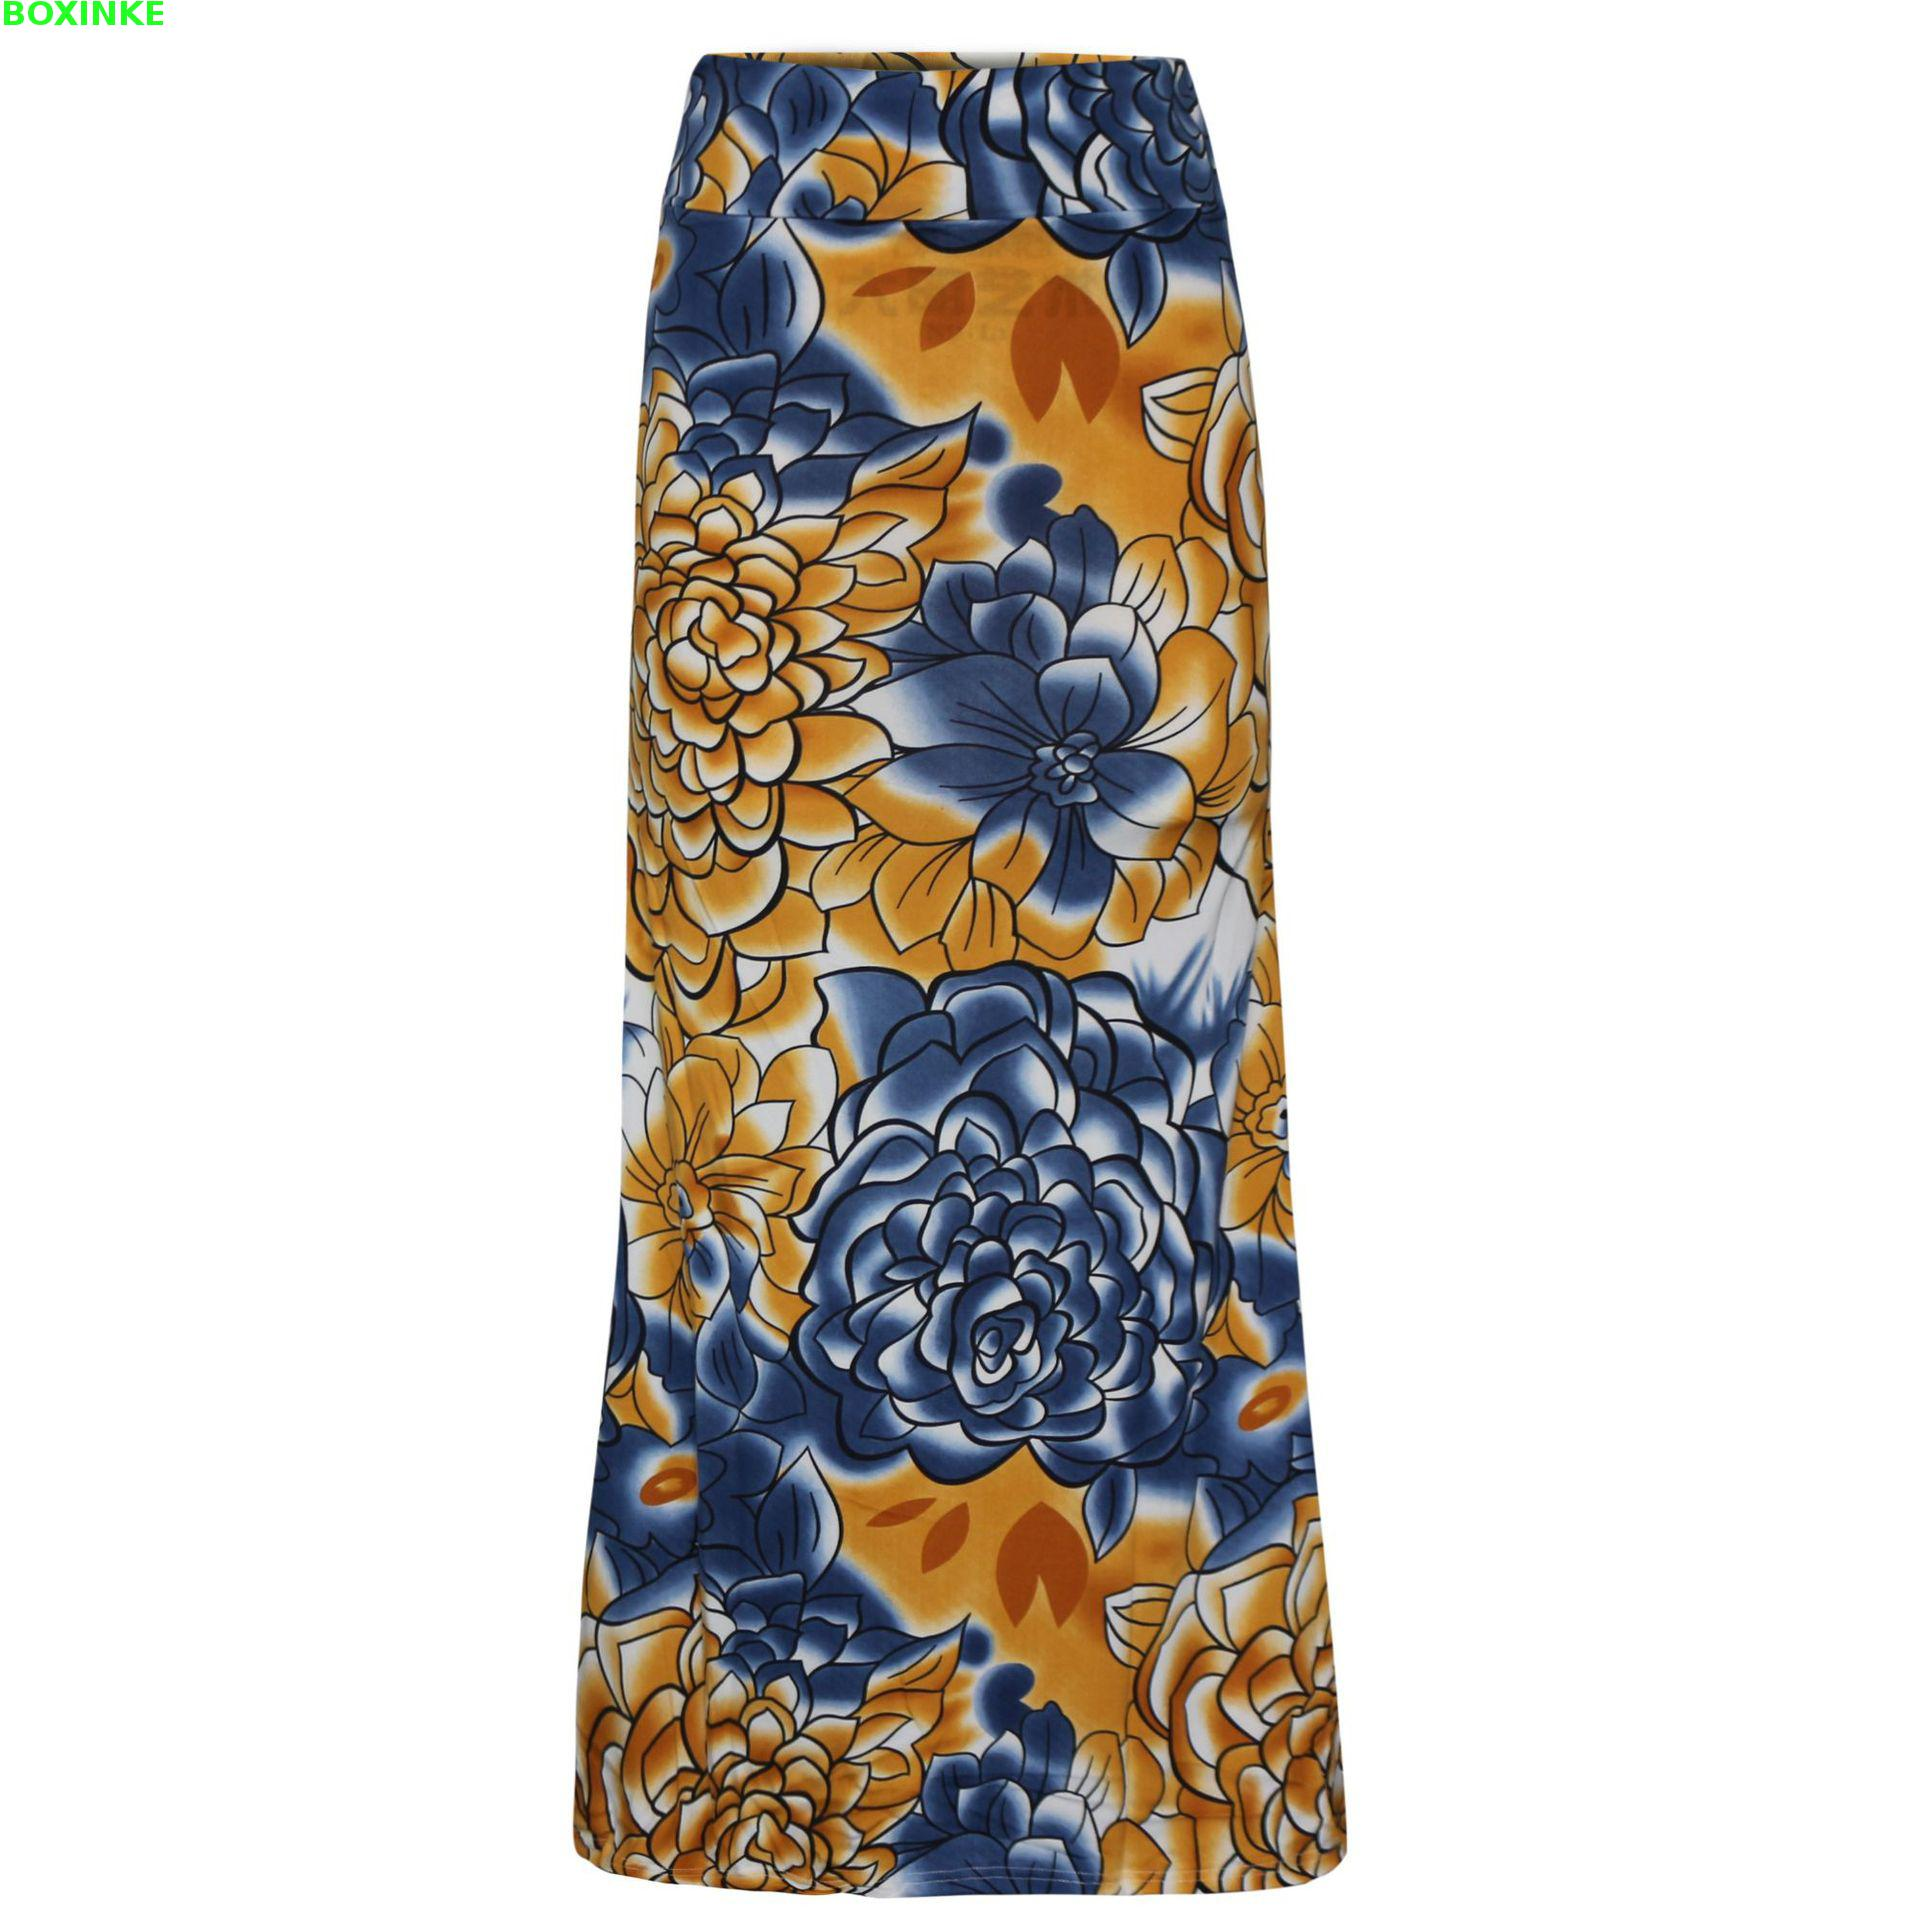 Skirts Print Rushed Midi New Printed Half length Skirt Of Europe And America High Waist Hip Fishtail Knitted Long Skirt 2019 in Skirts from Women 39 s Clothing